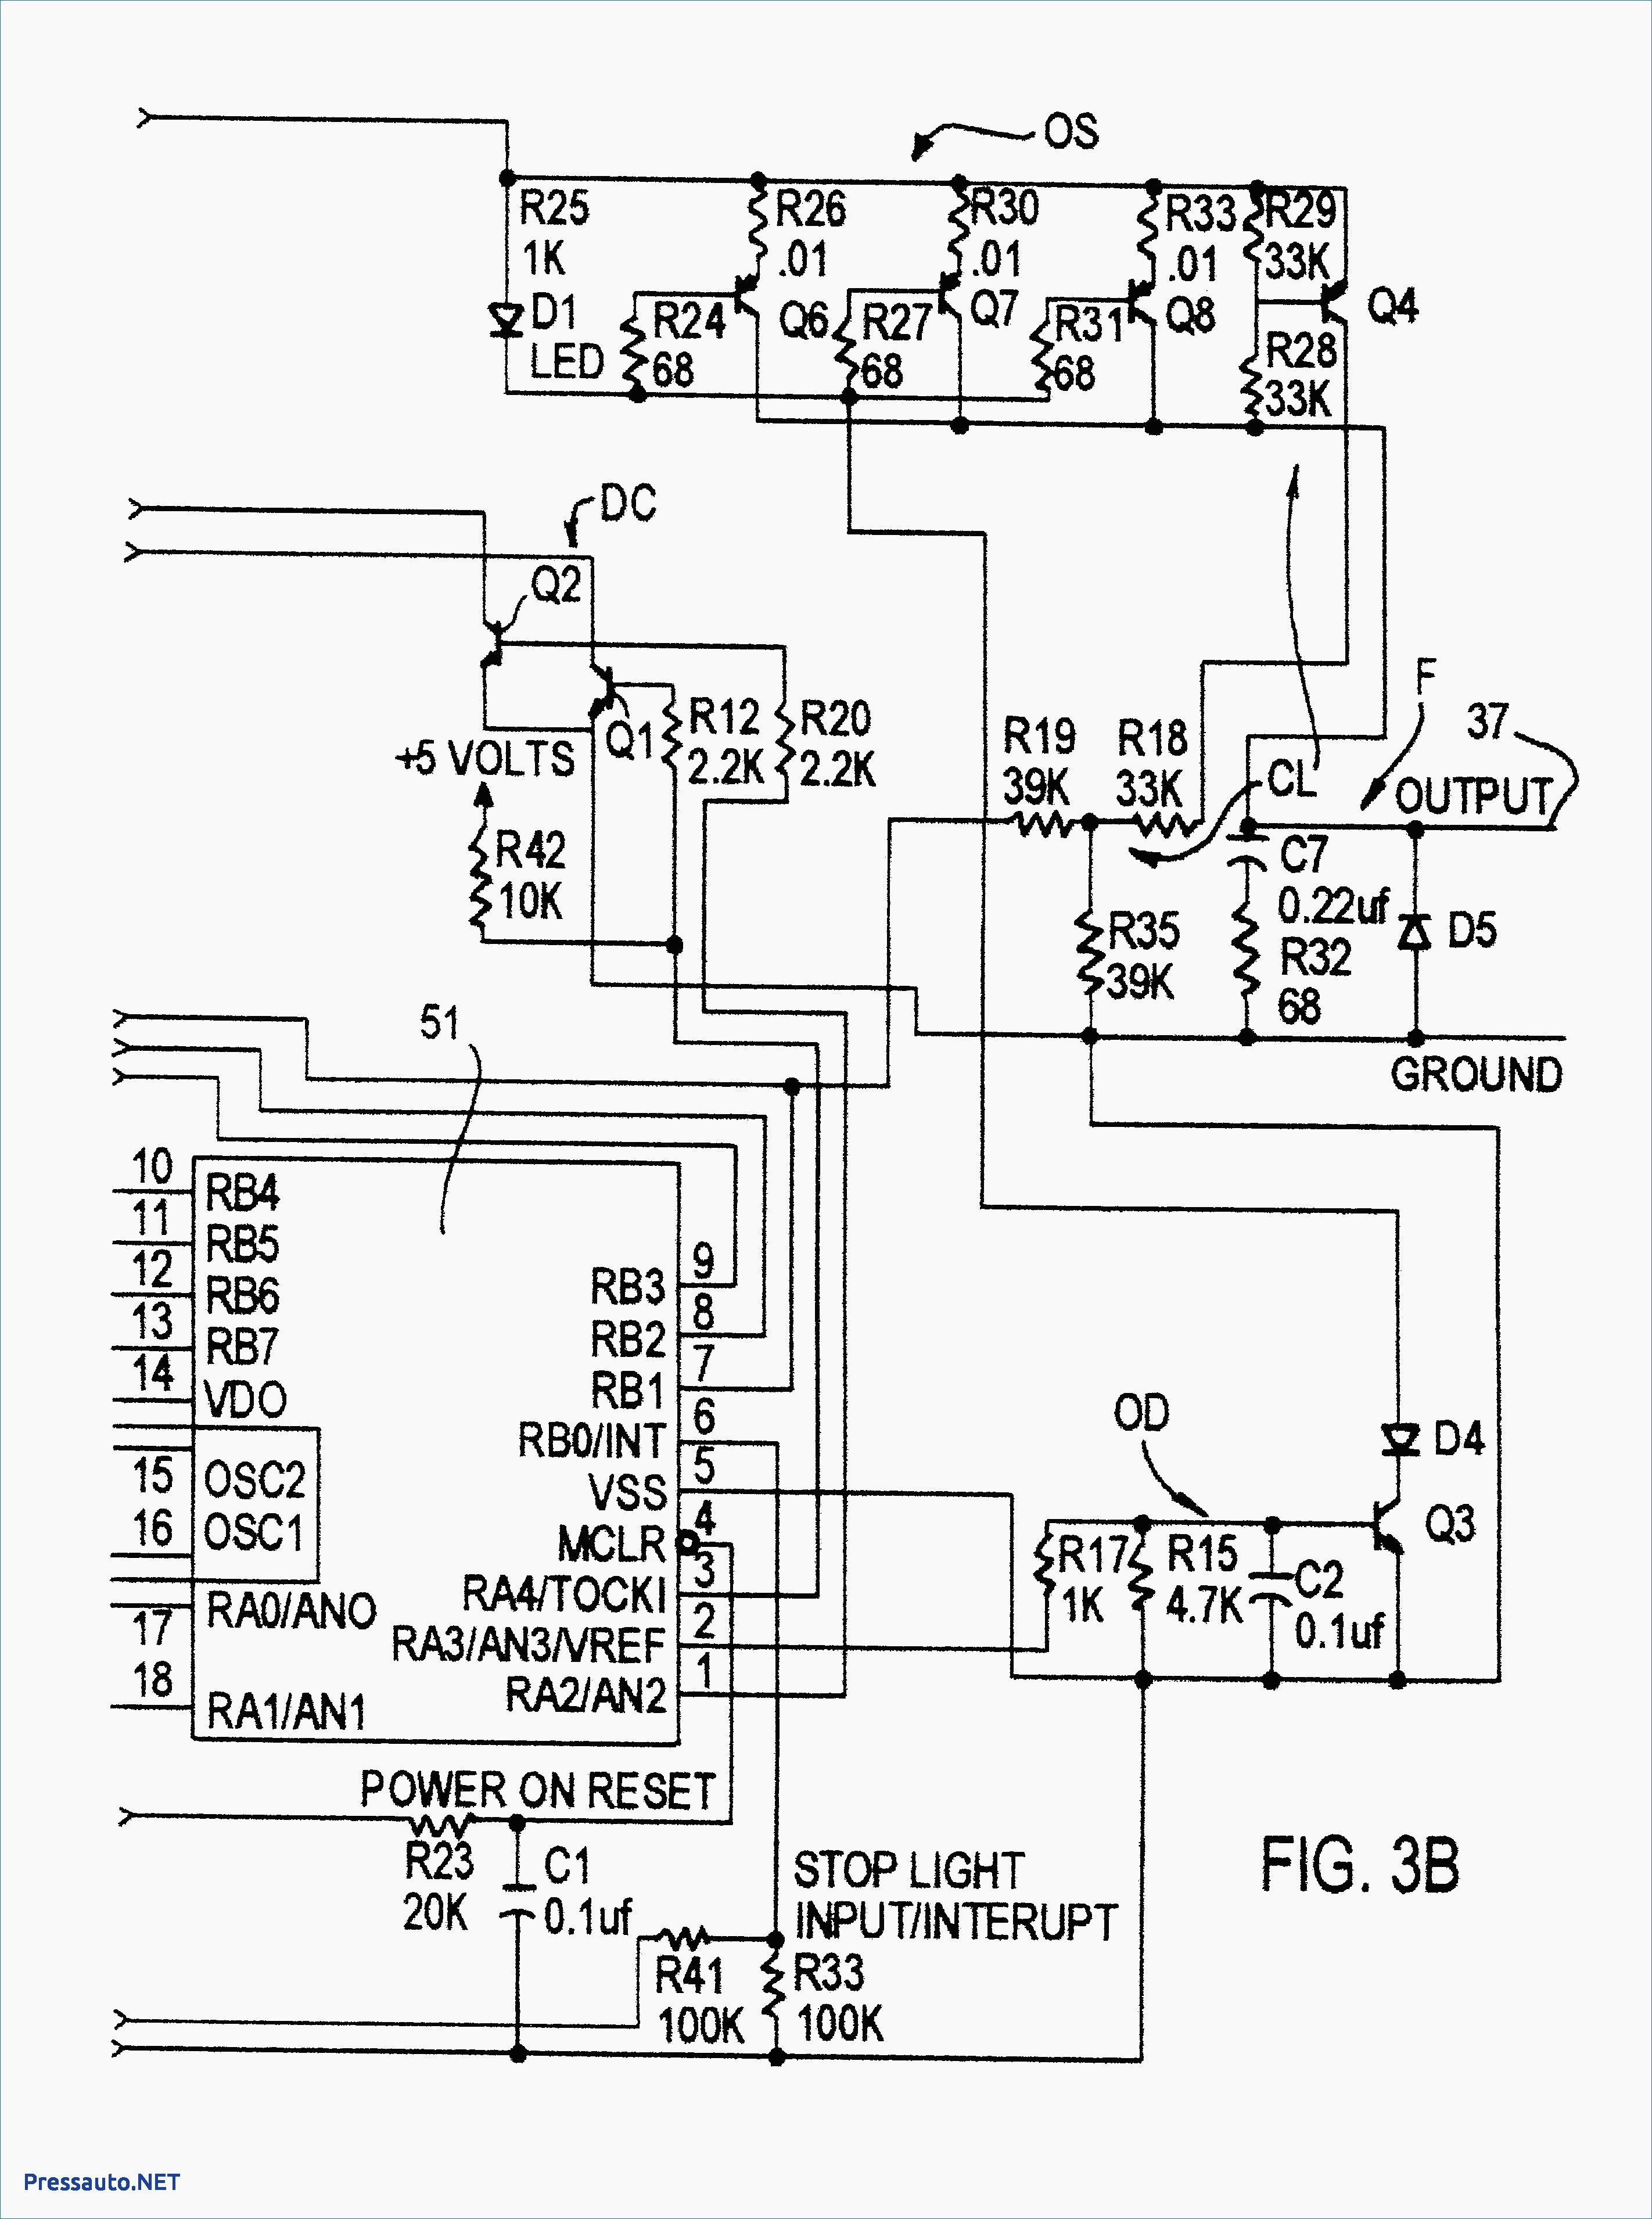 Sunpro Tach Wiring | Wiring Diagram Libraries - Sunpro Tach Wiring Diagram